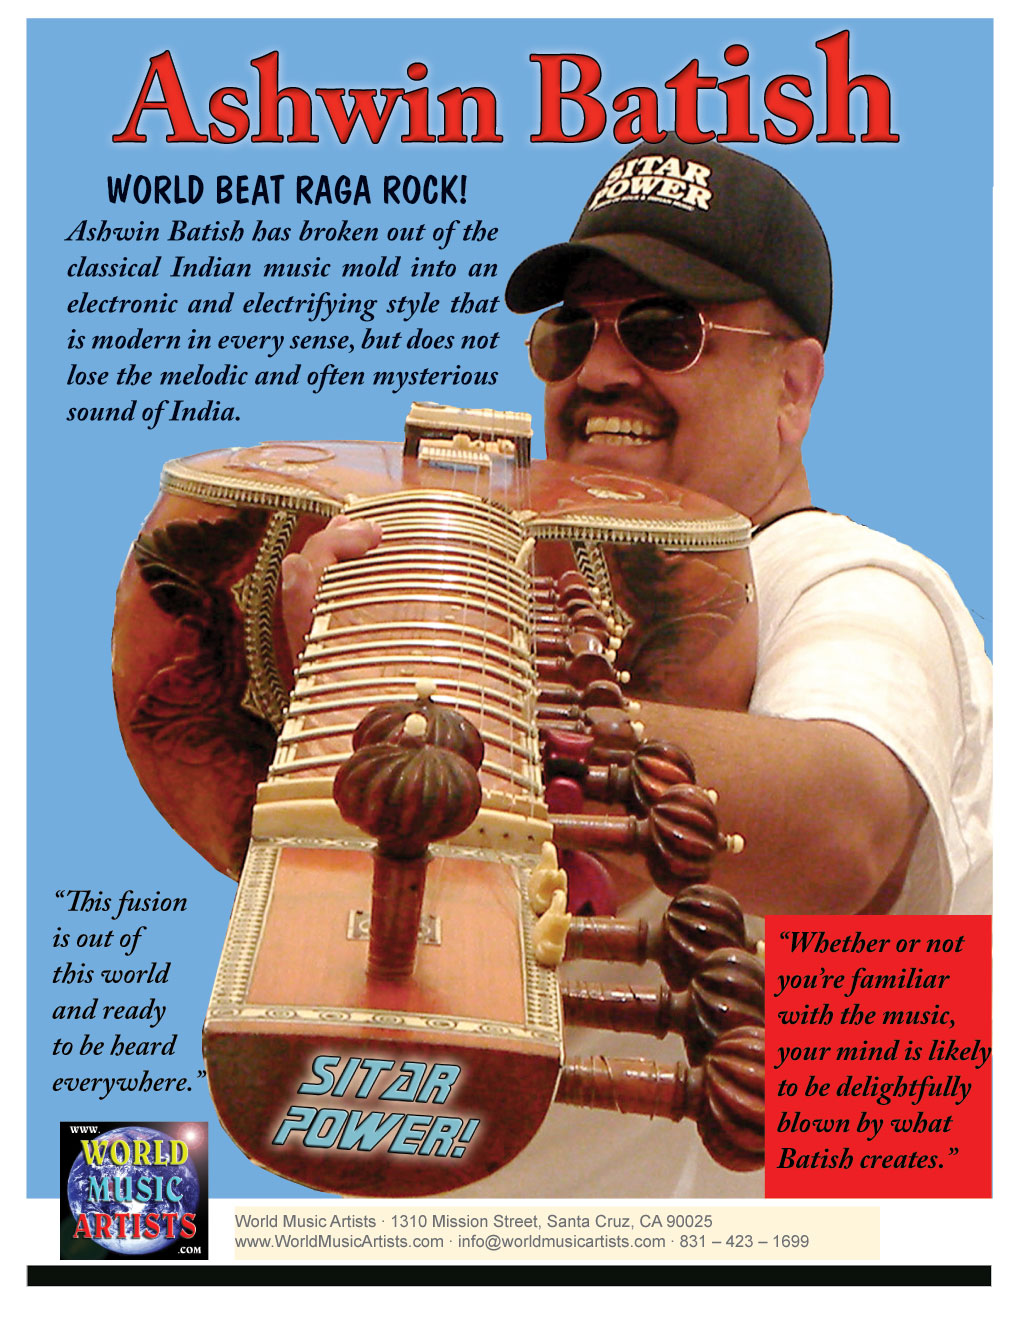 World Beat Raga Rock! Sitar Power Man Ashwin Batish Artist One Sheet, Back  Page �12 Ashwin Batish, Batish Records (831) 423-1699